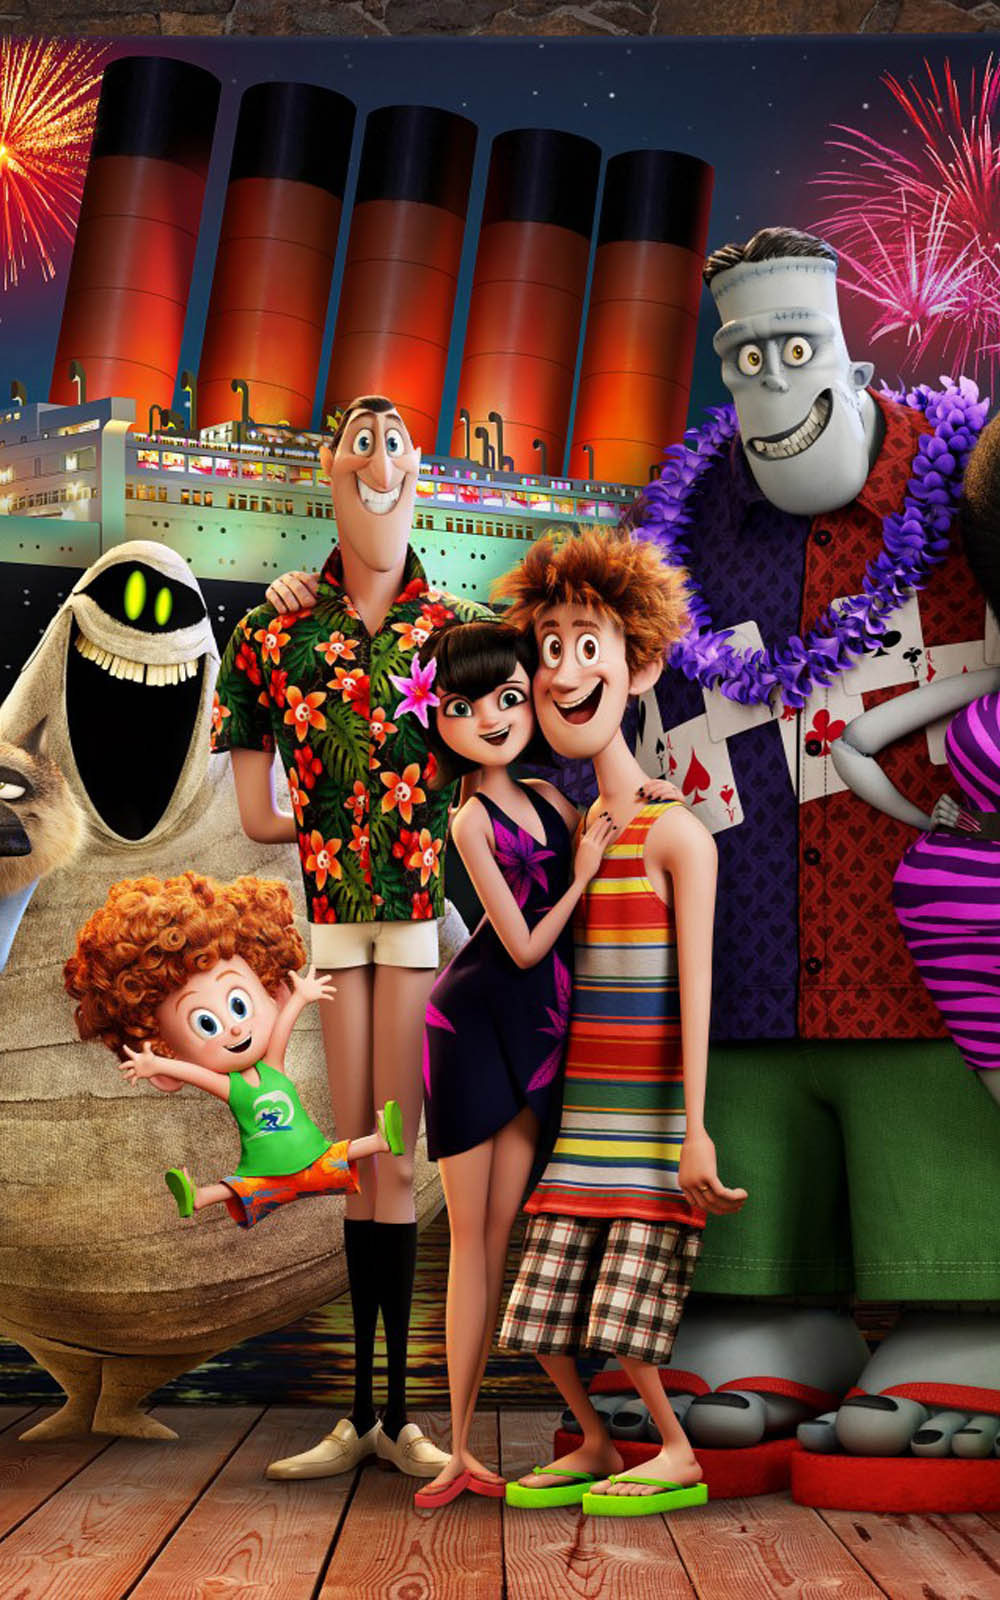 Whatsapp Car Wallpaper Download Download Hotel Transylvania 3 Free Pure 4k Ultra Hd Mobile